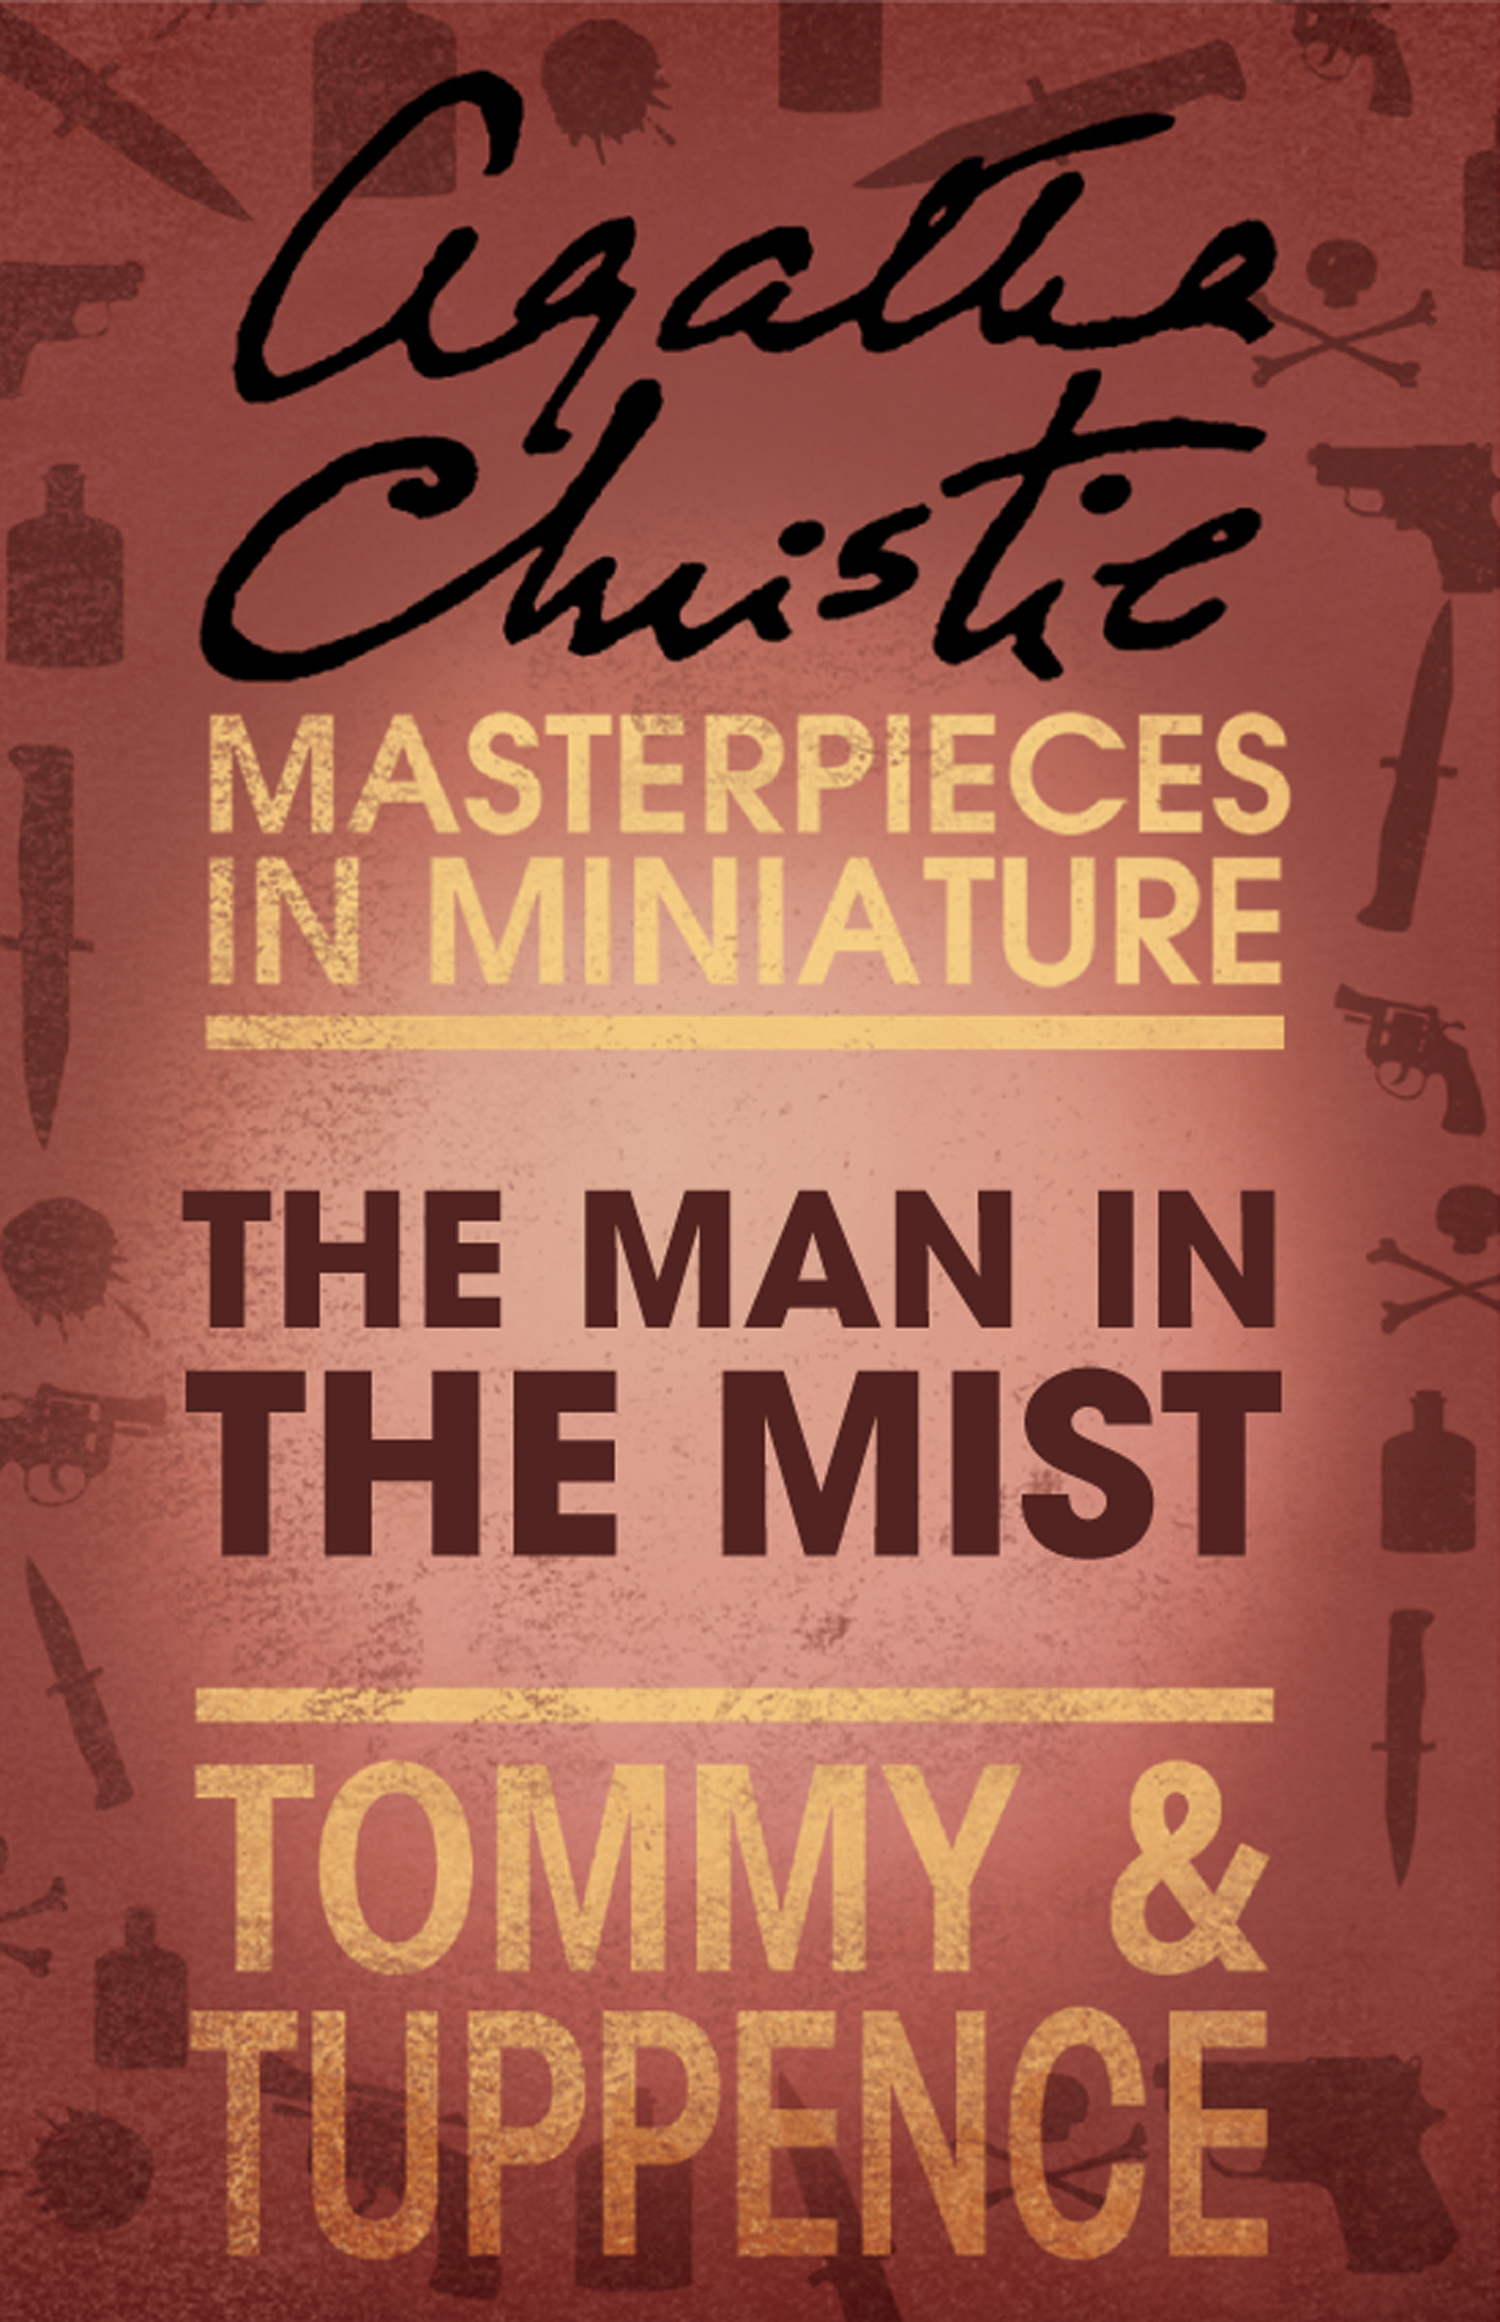 The Man in the Mist: An Agatha Christie Short Story